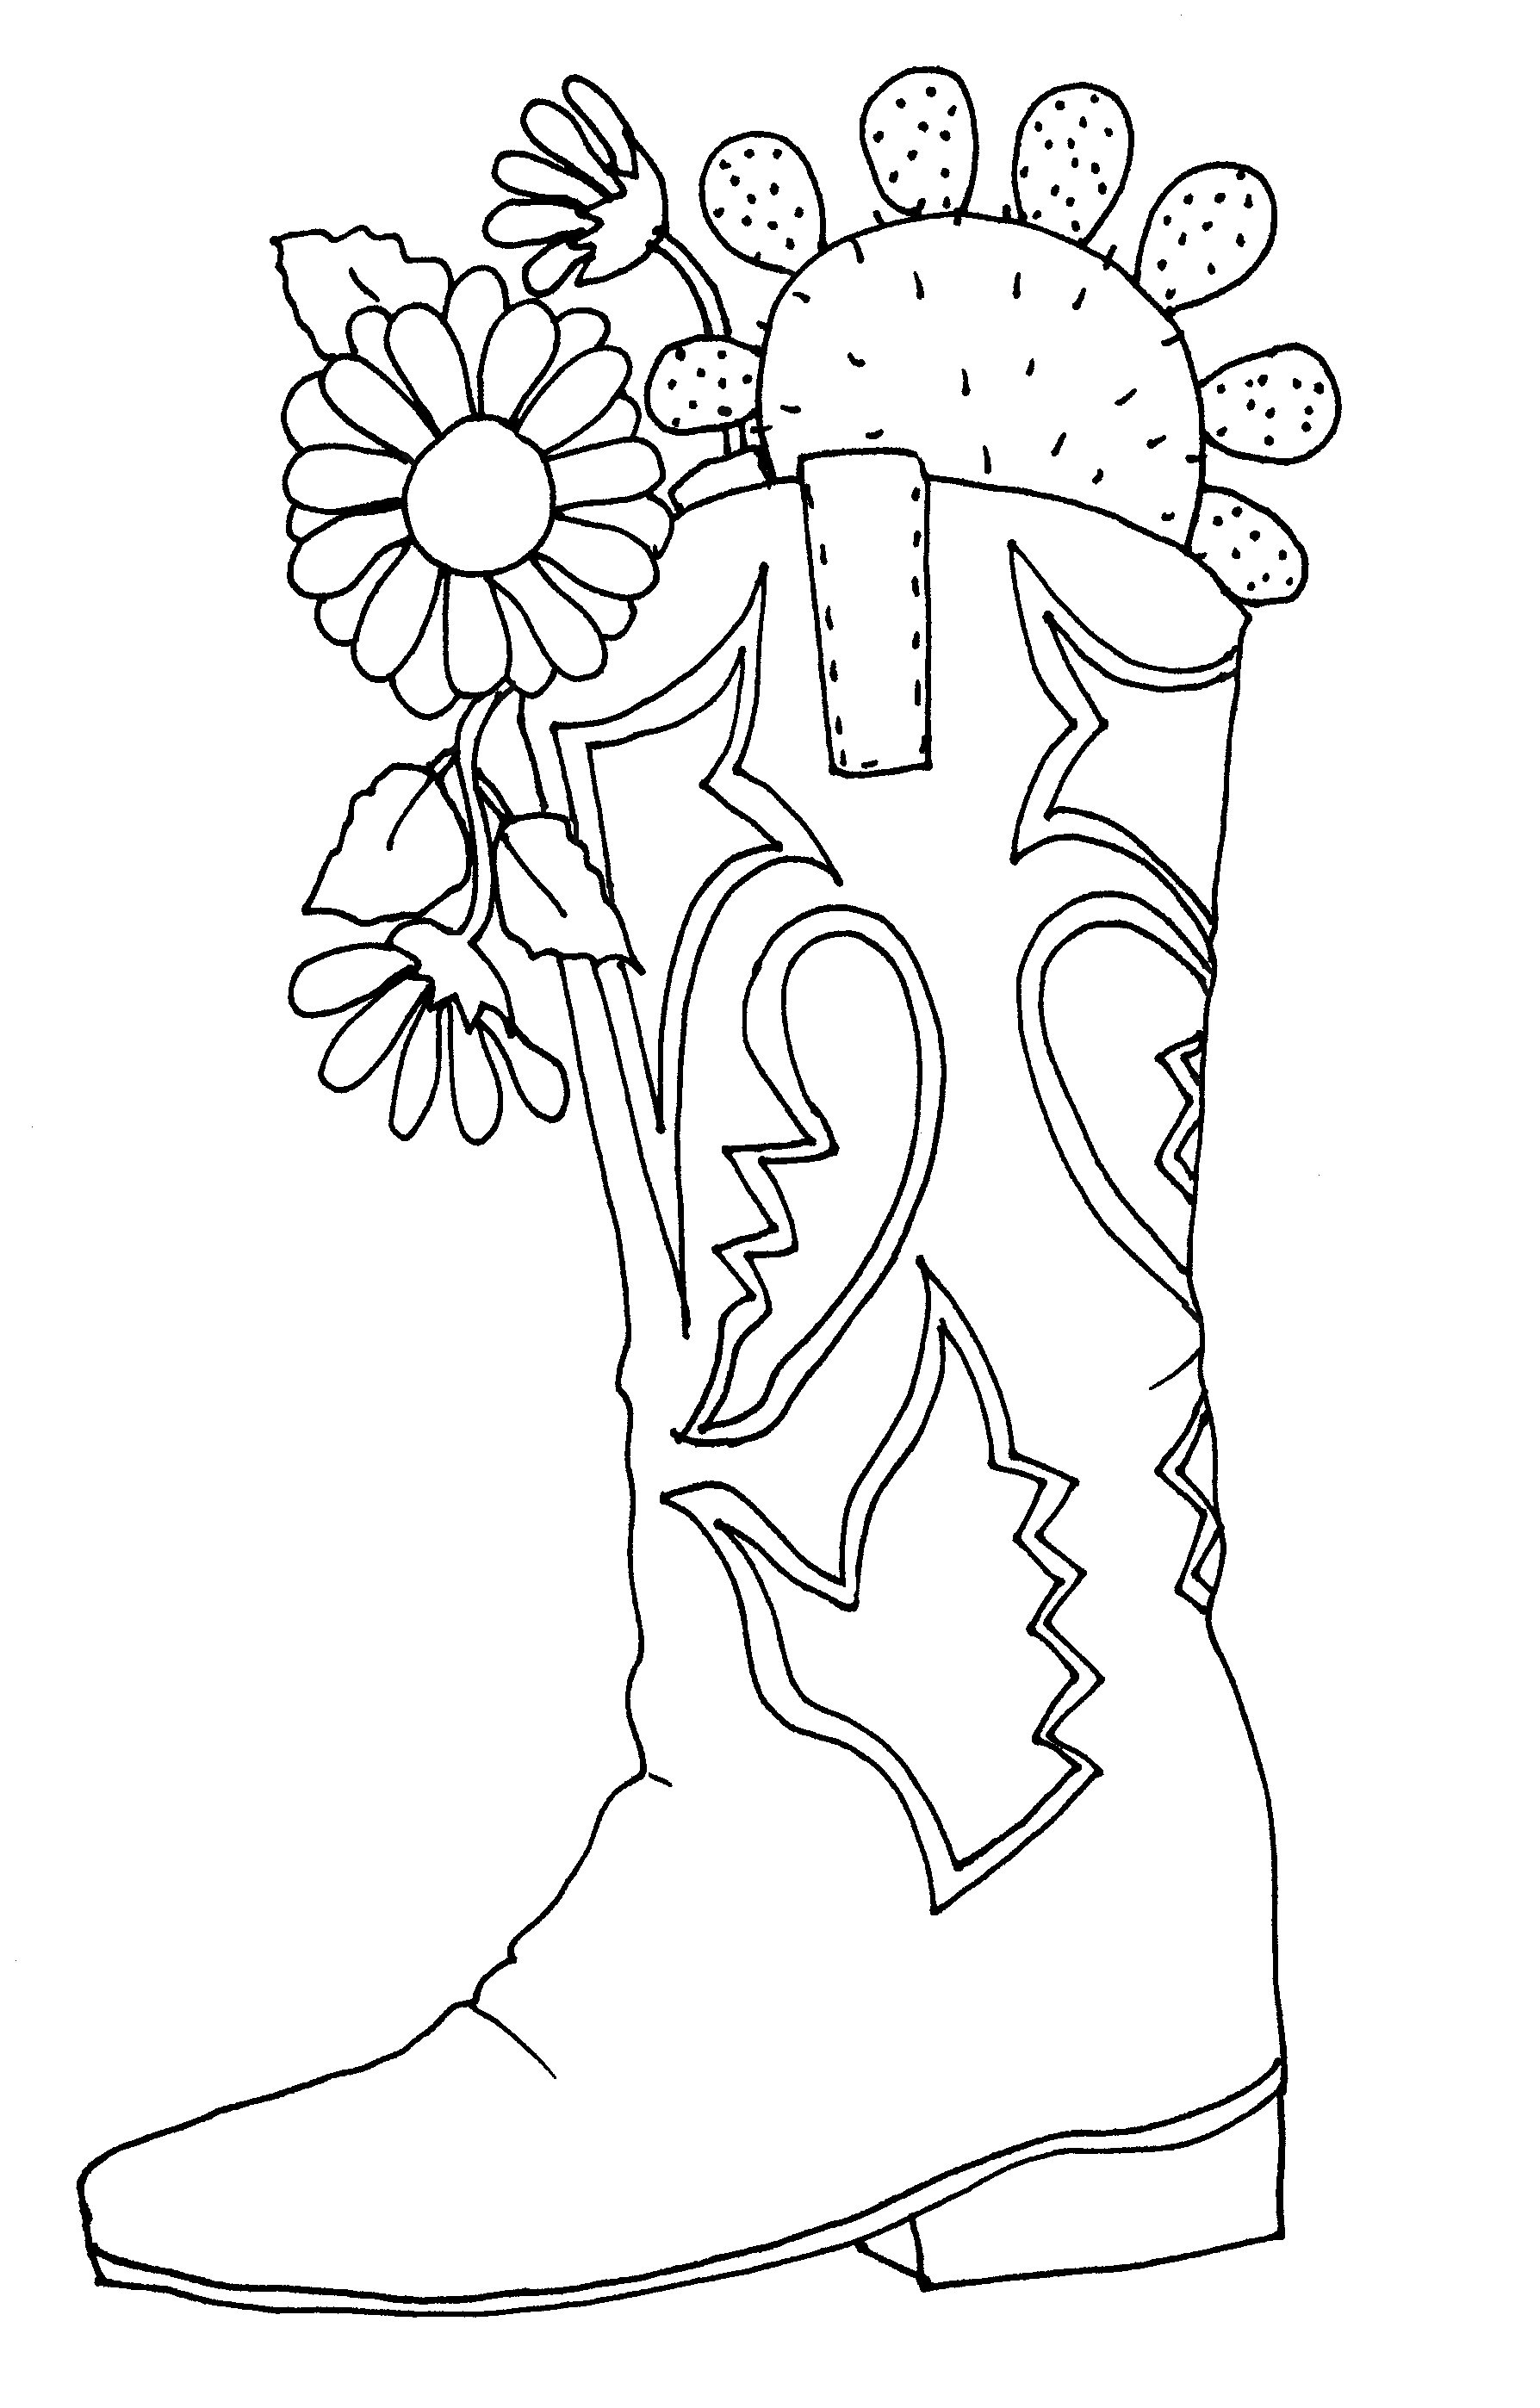 boot coloring pages printable cowboy coloring pages for kids cool2bkids pages coloring boot